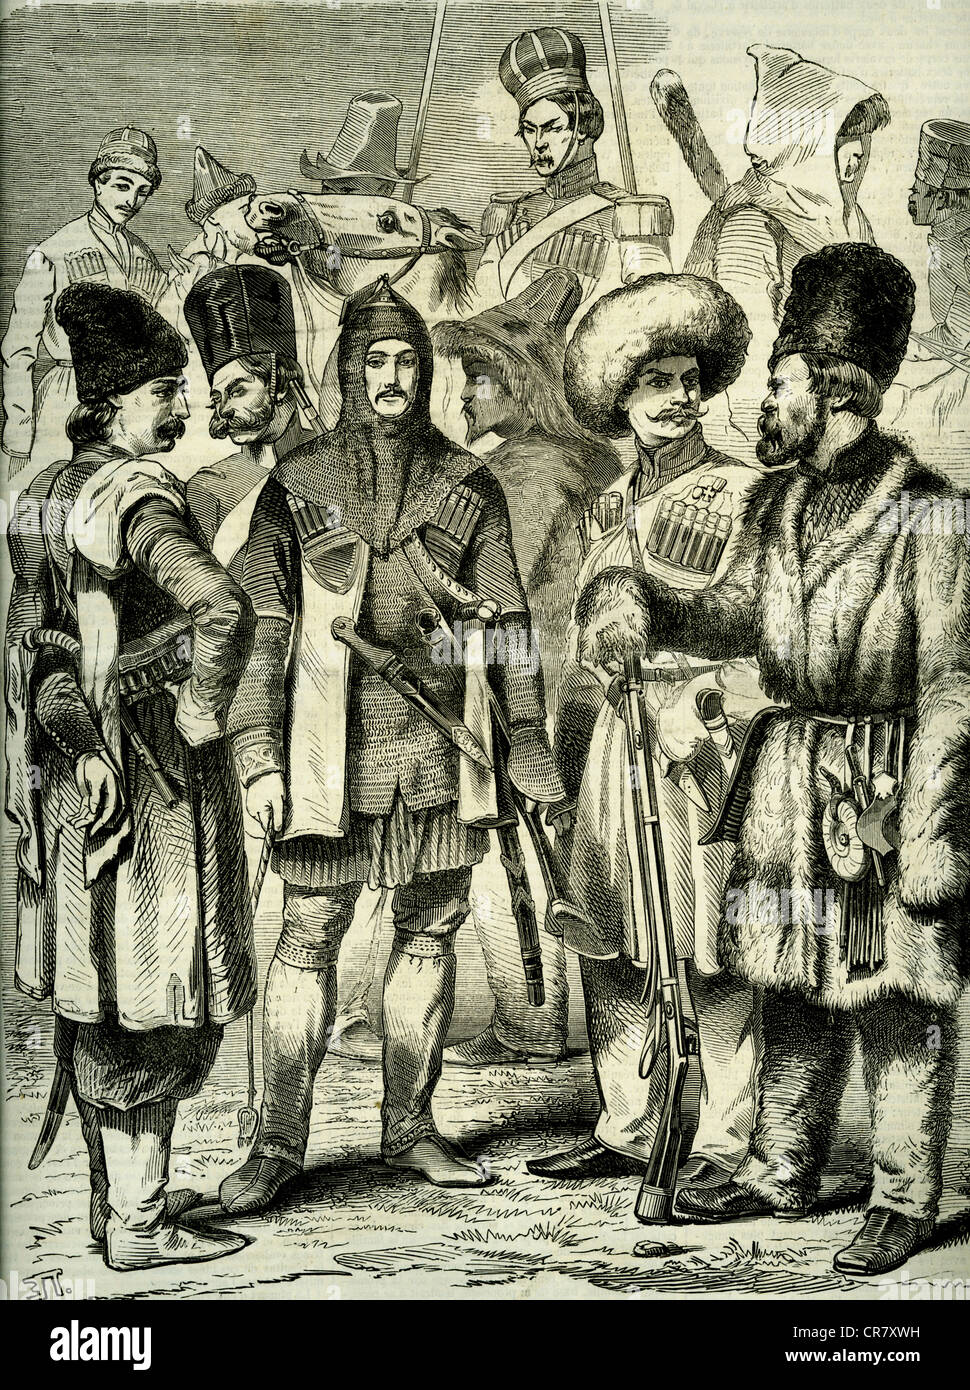 Russian army, irregular soldiers, historical illustration, 1920 - Stock Image